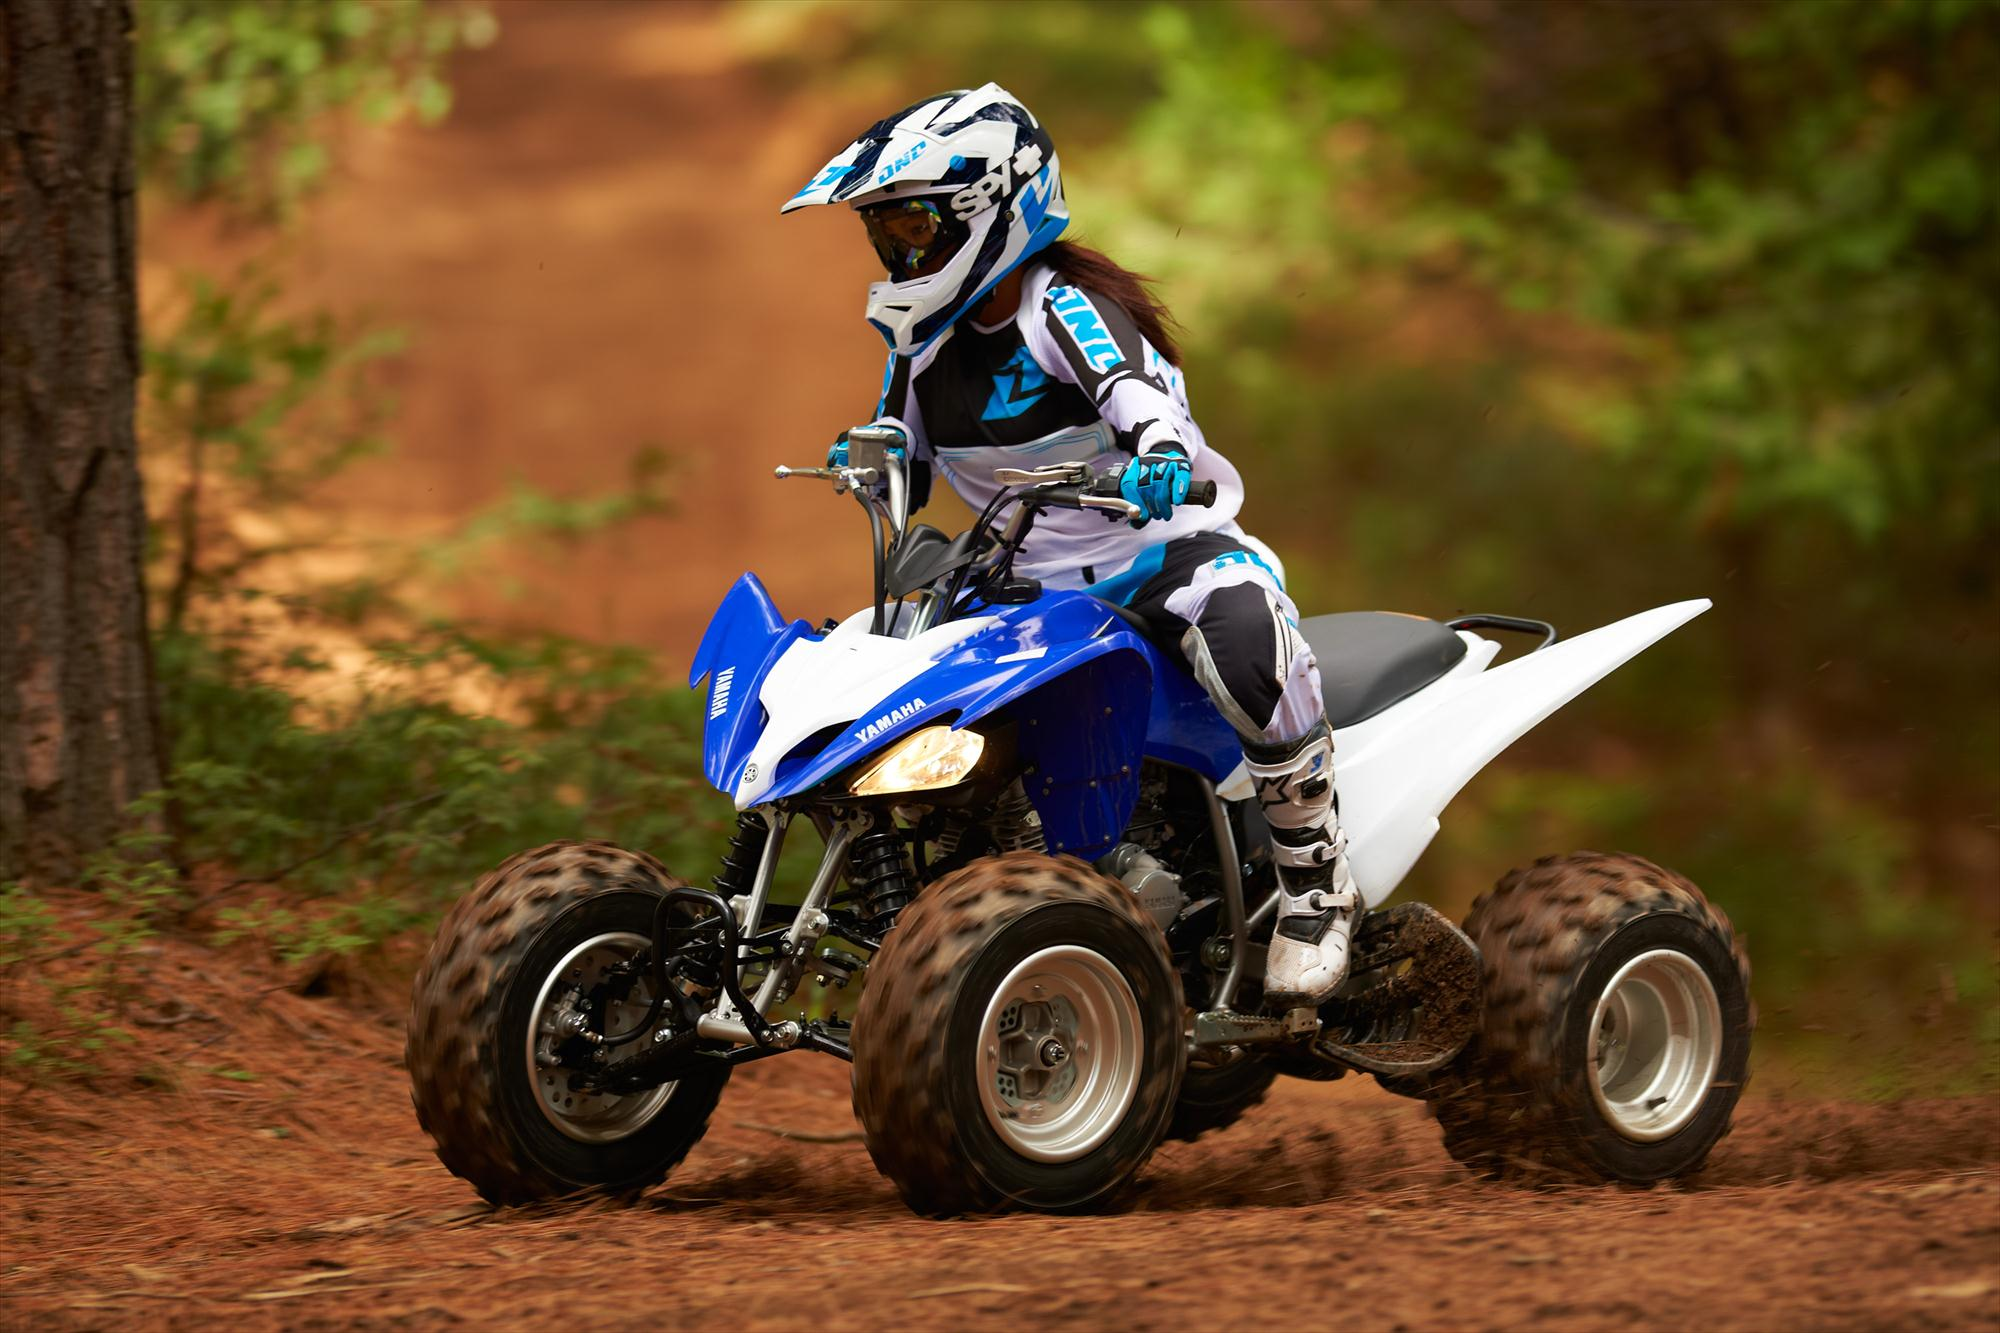 yamaha raptor atv quad offroad motorbike bike dirtbike ew. Black Bedroom Furniture Sets. Home Design Ideas